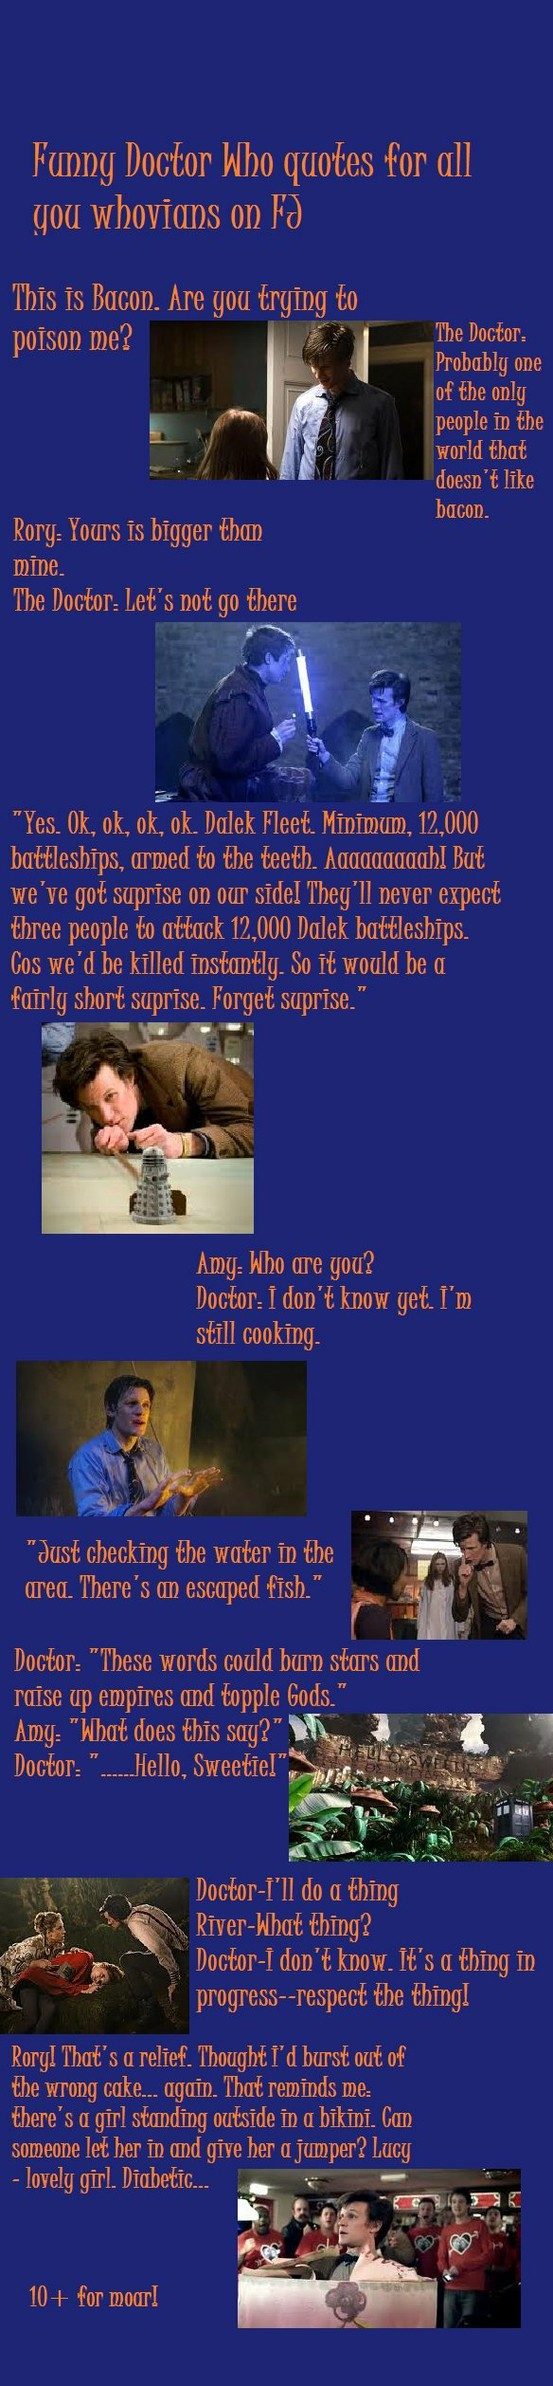 Doctor Who Quotes About Love Doctor Who Quotes  Click Image To Find More Geek Pinterest Pins